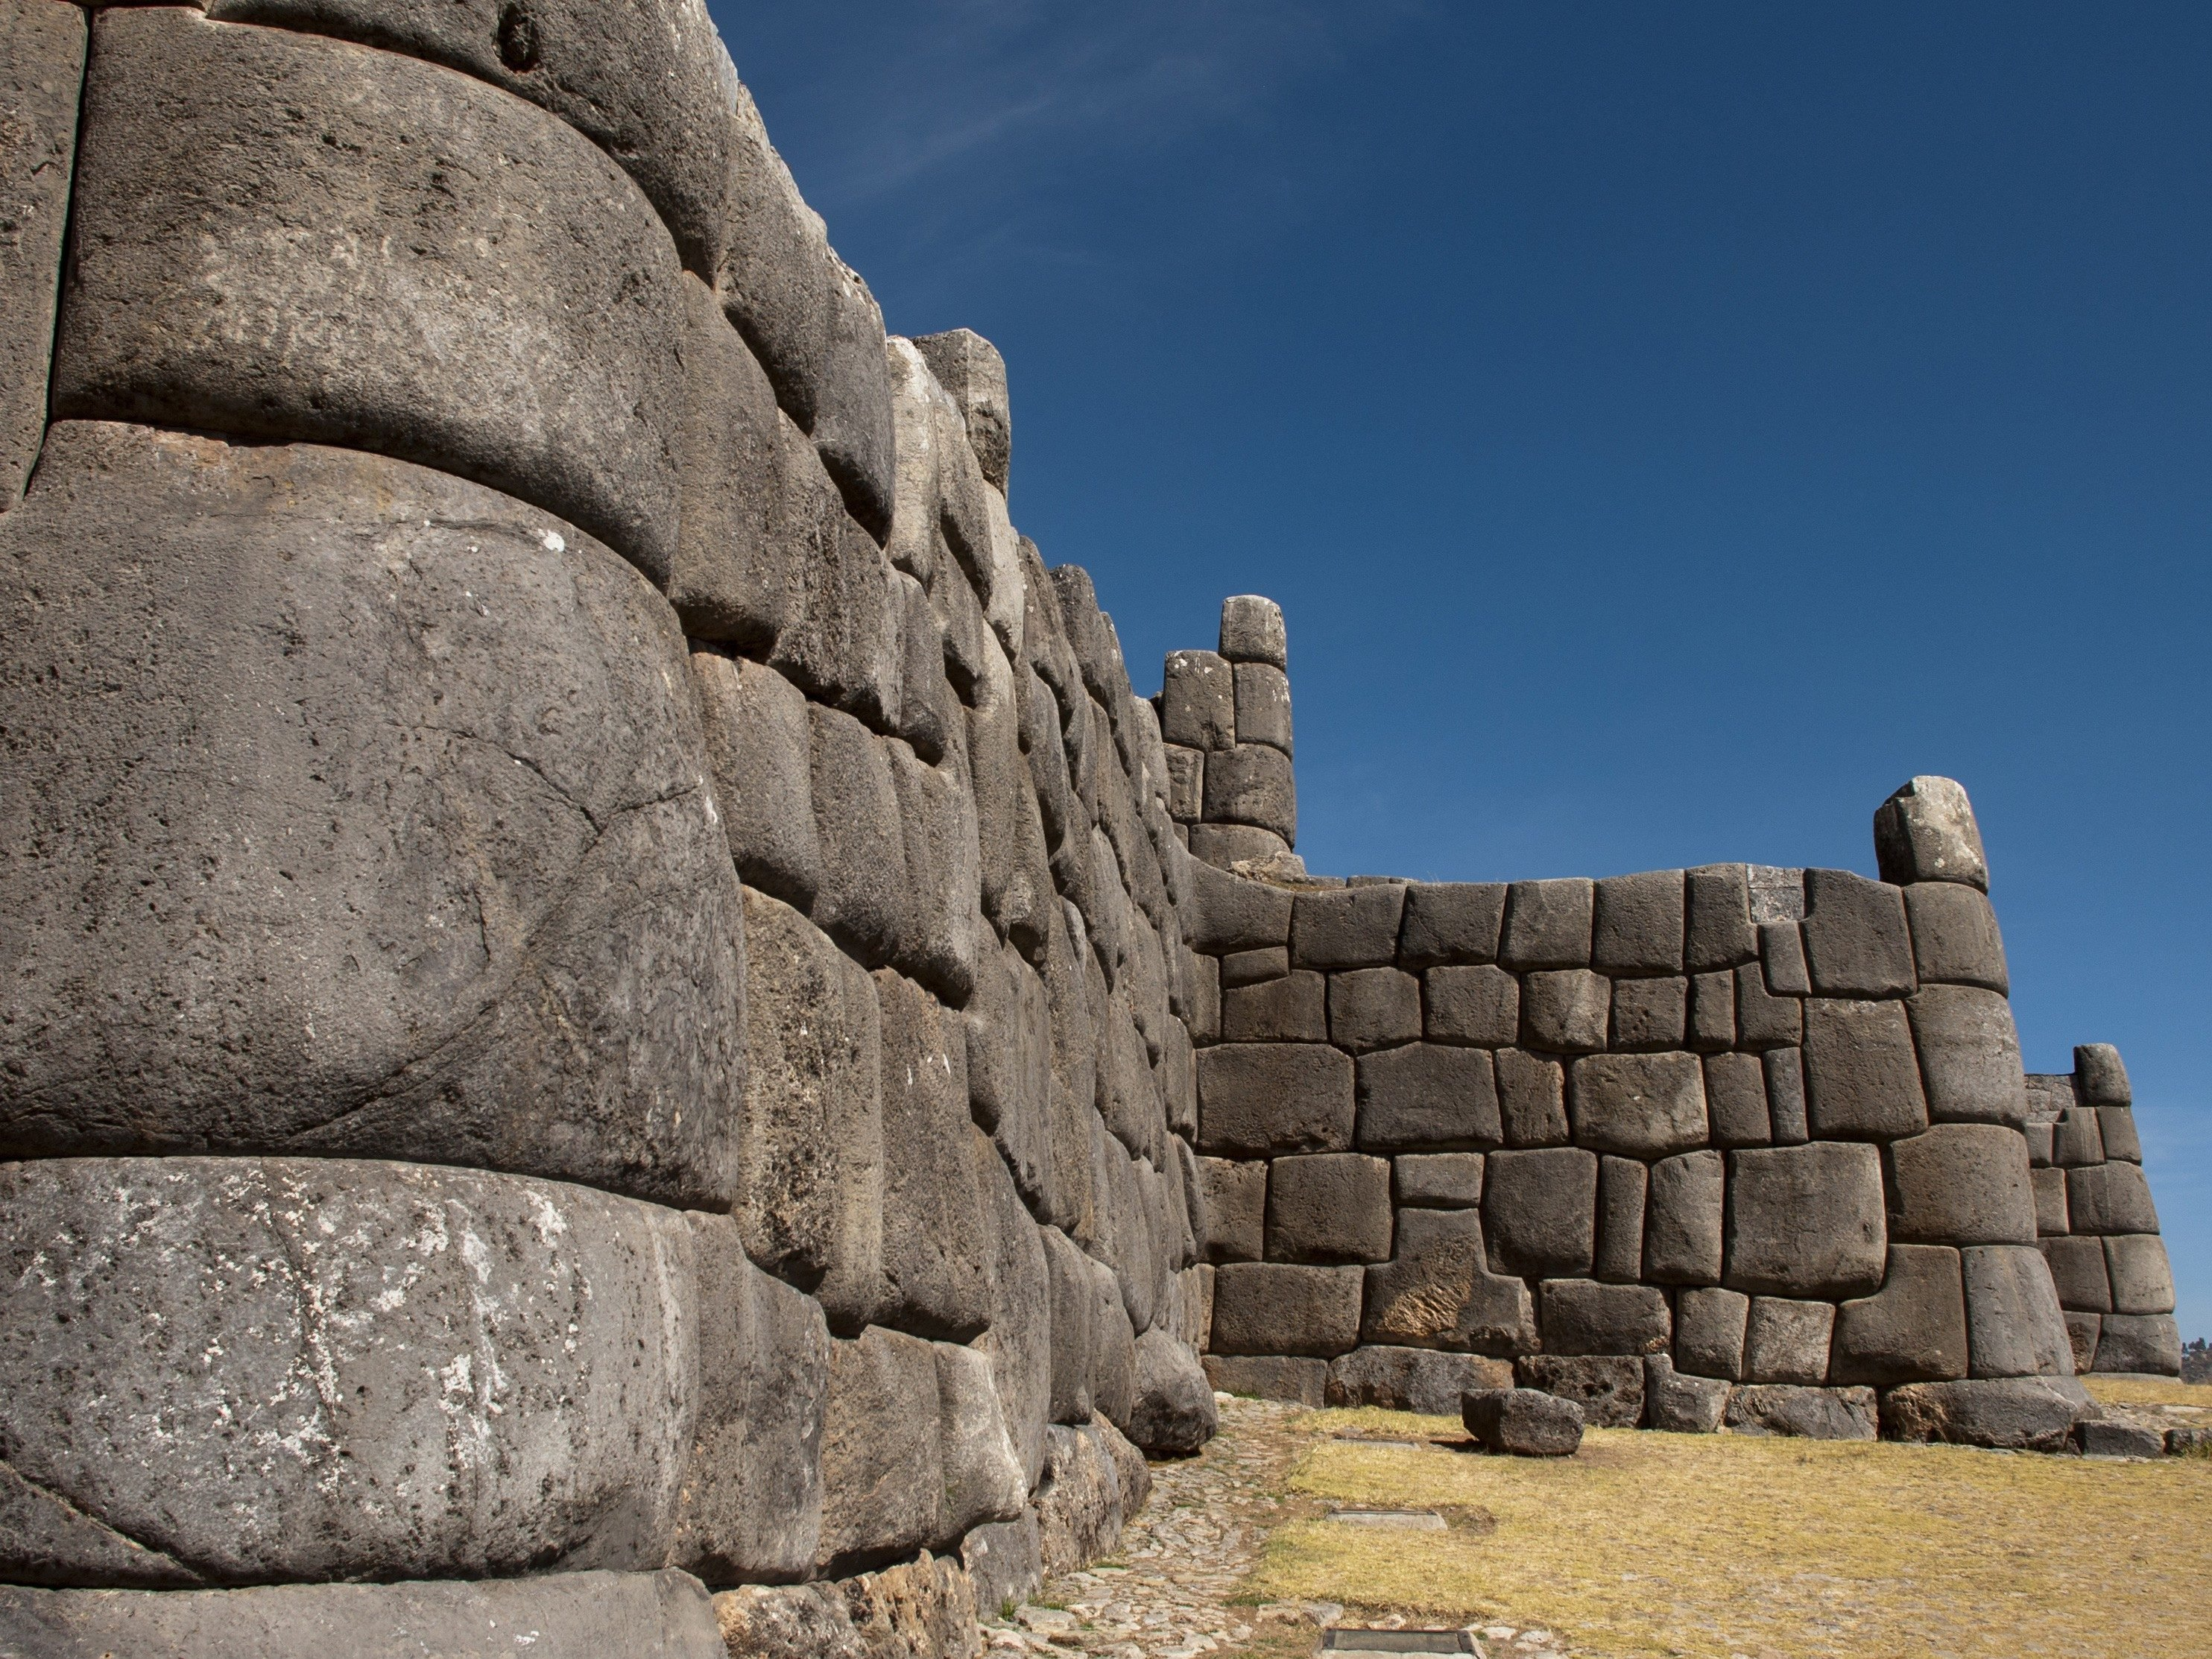 Stupendous Structure of the Inca Empire: Sacsaywaman - Peru